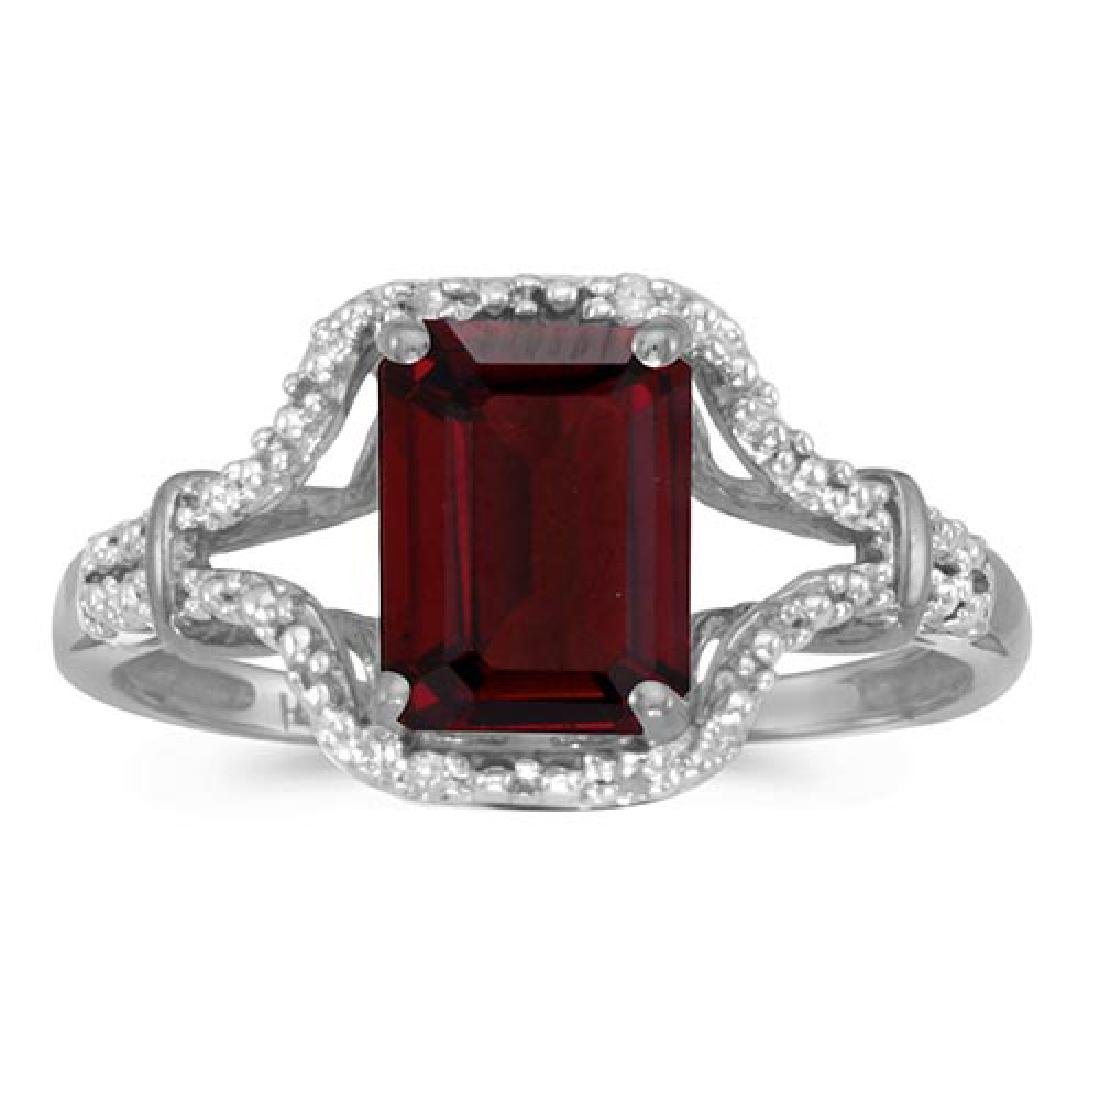 Certified 10k White Gold Emerald-cut Garnet And Diamond